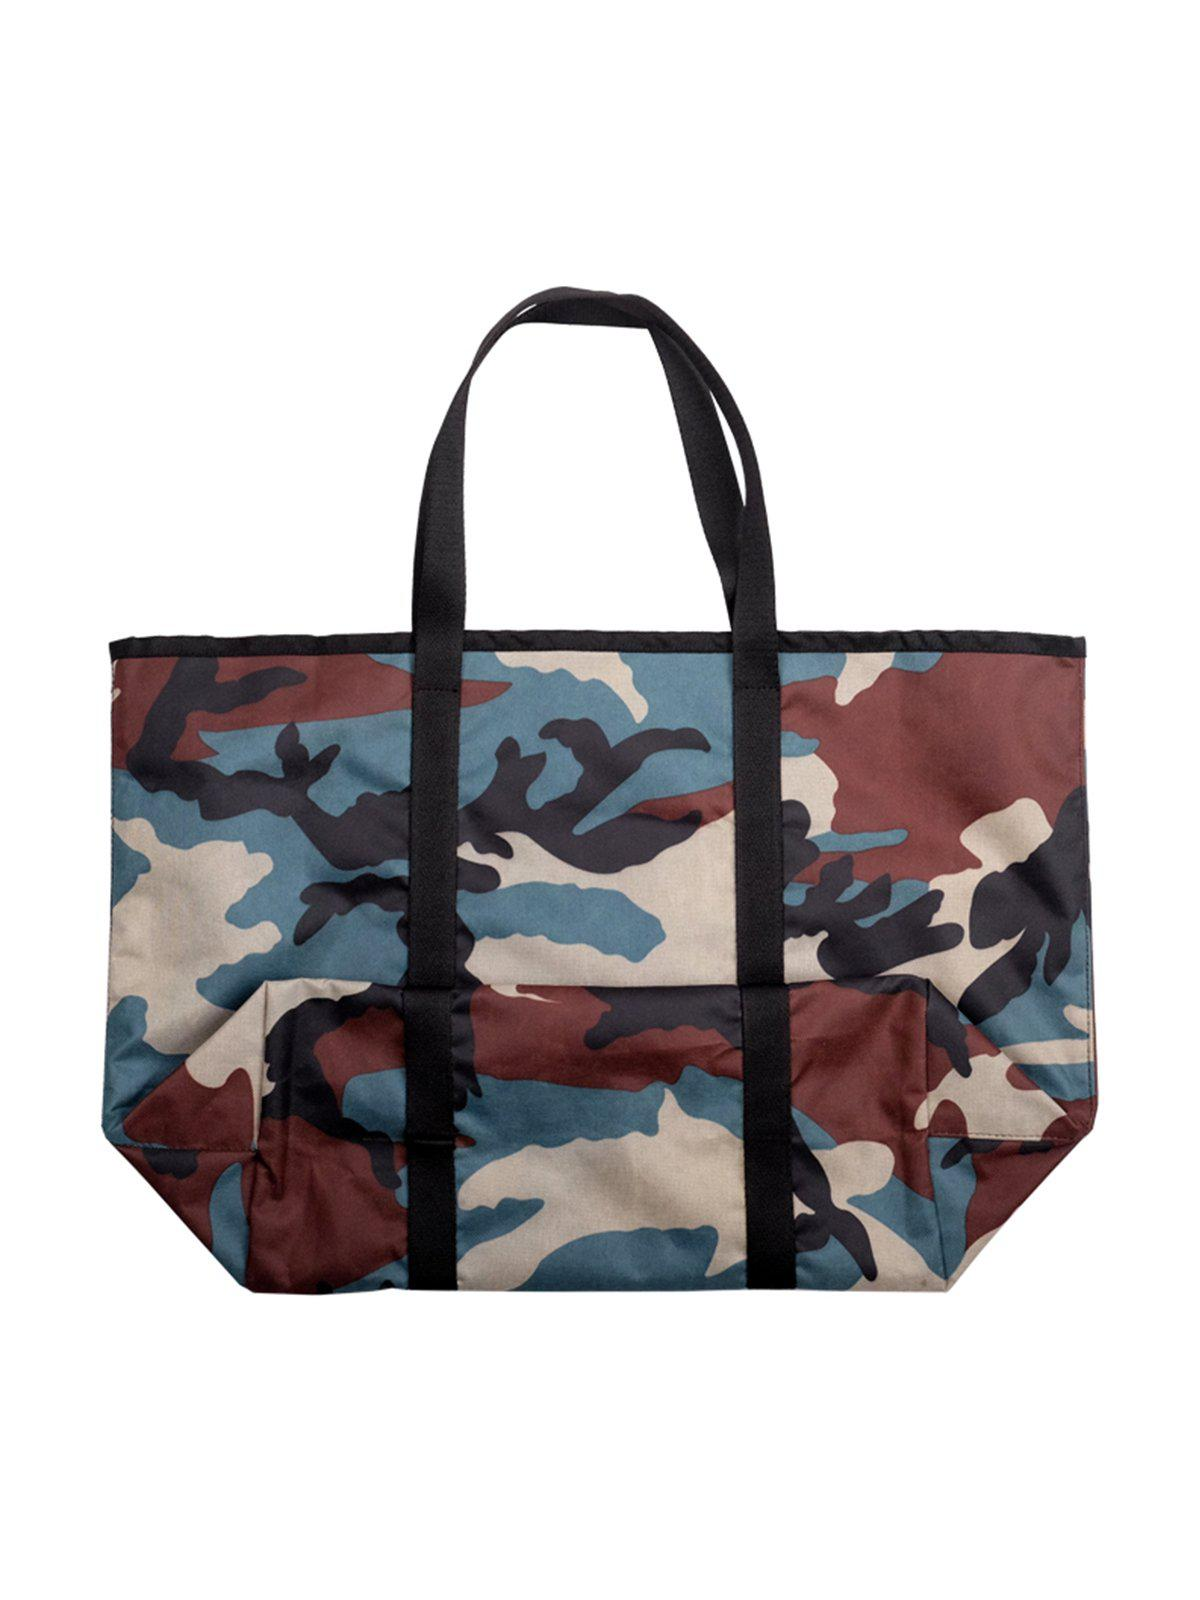 2882f5dc9 US Comp4ny 1st Totebag Surplus Camouflage